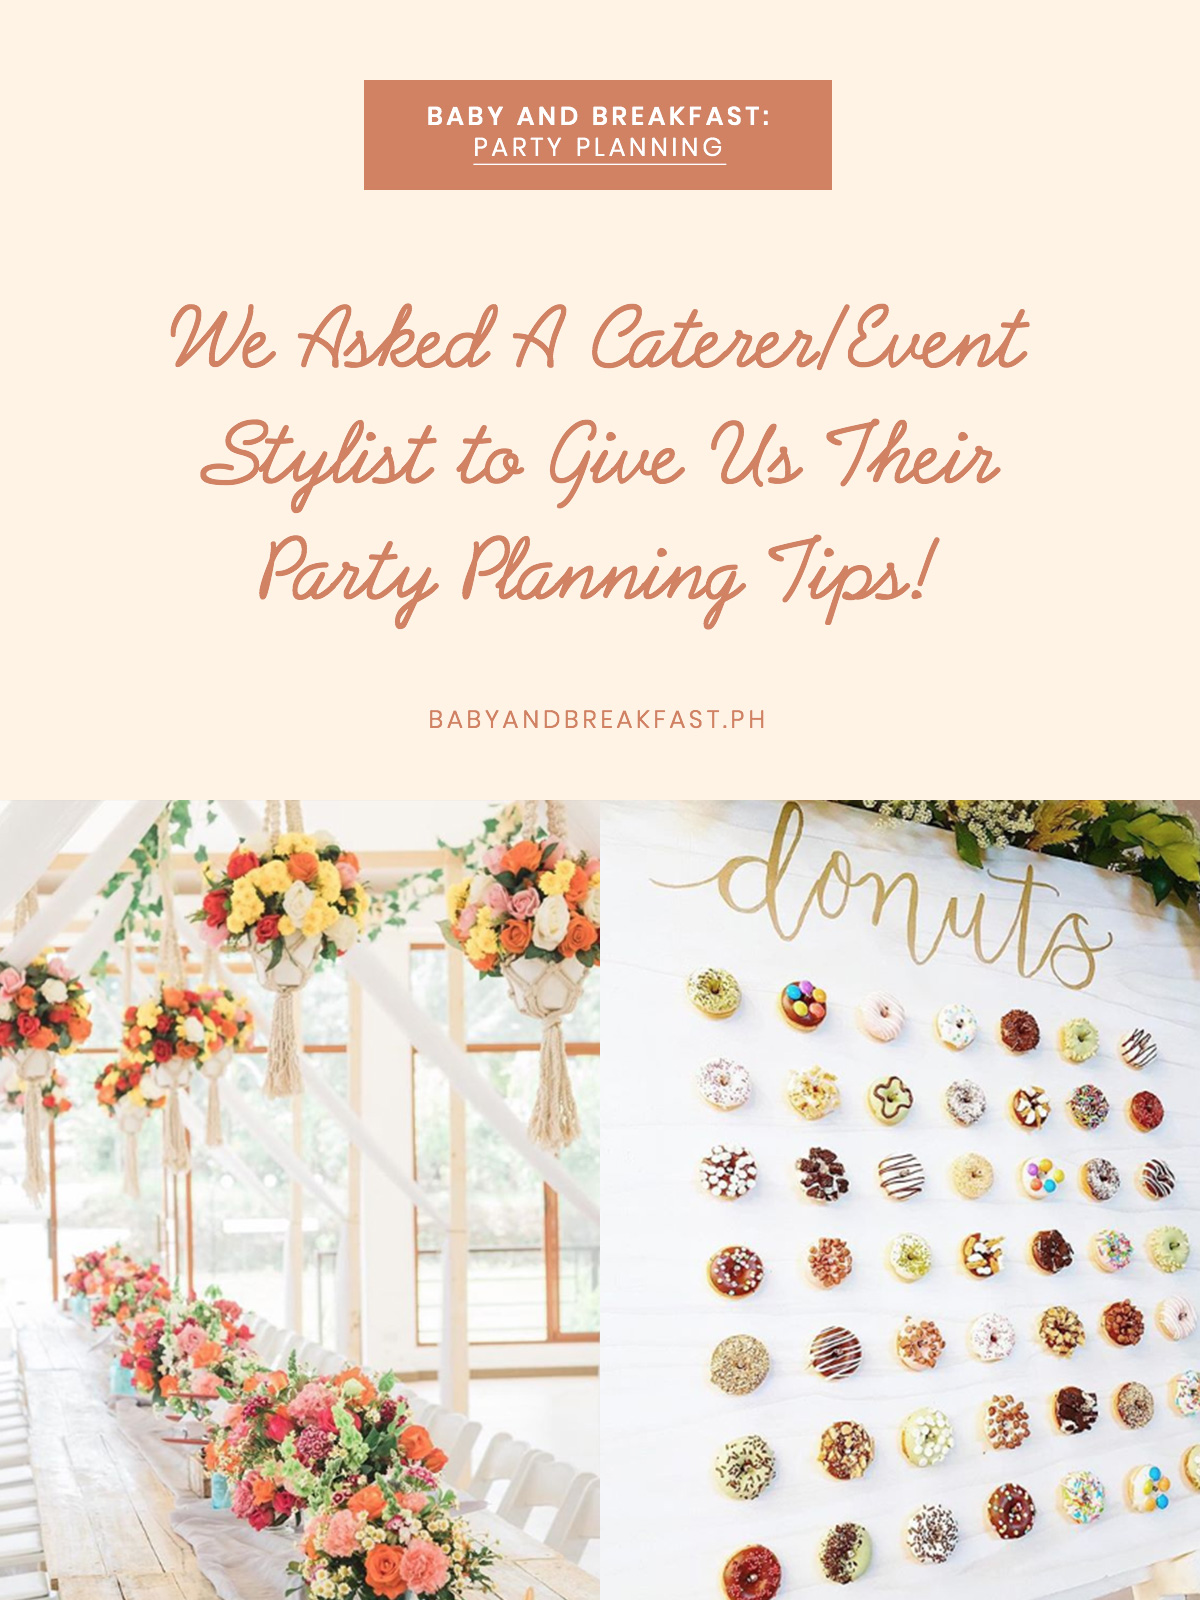 Baby and Breakfast: Party Planning We Asked A Caterer/Event Stylist to Give us Their Party Planning Tips!